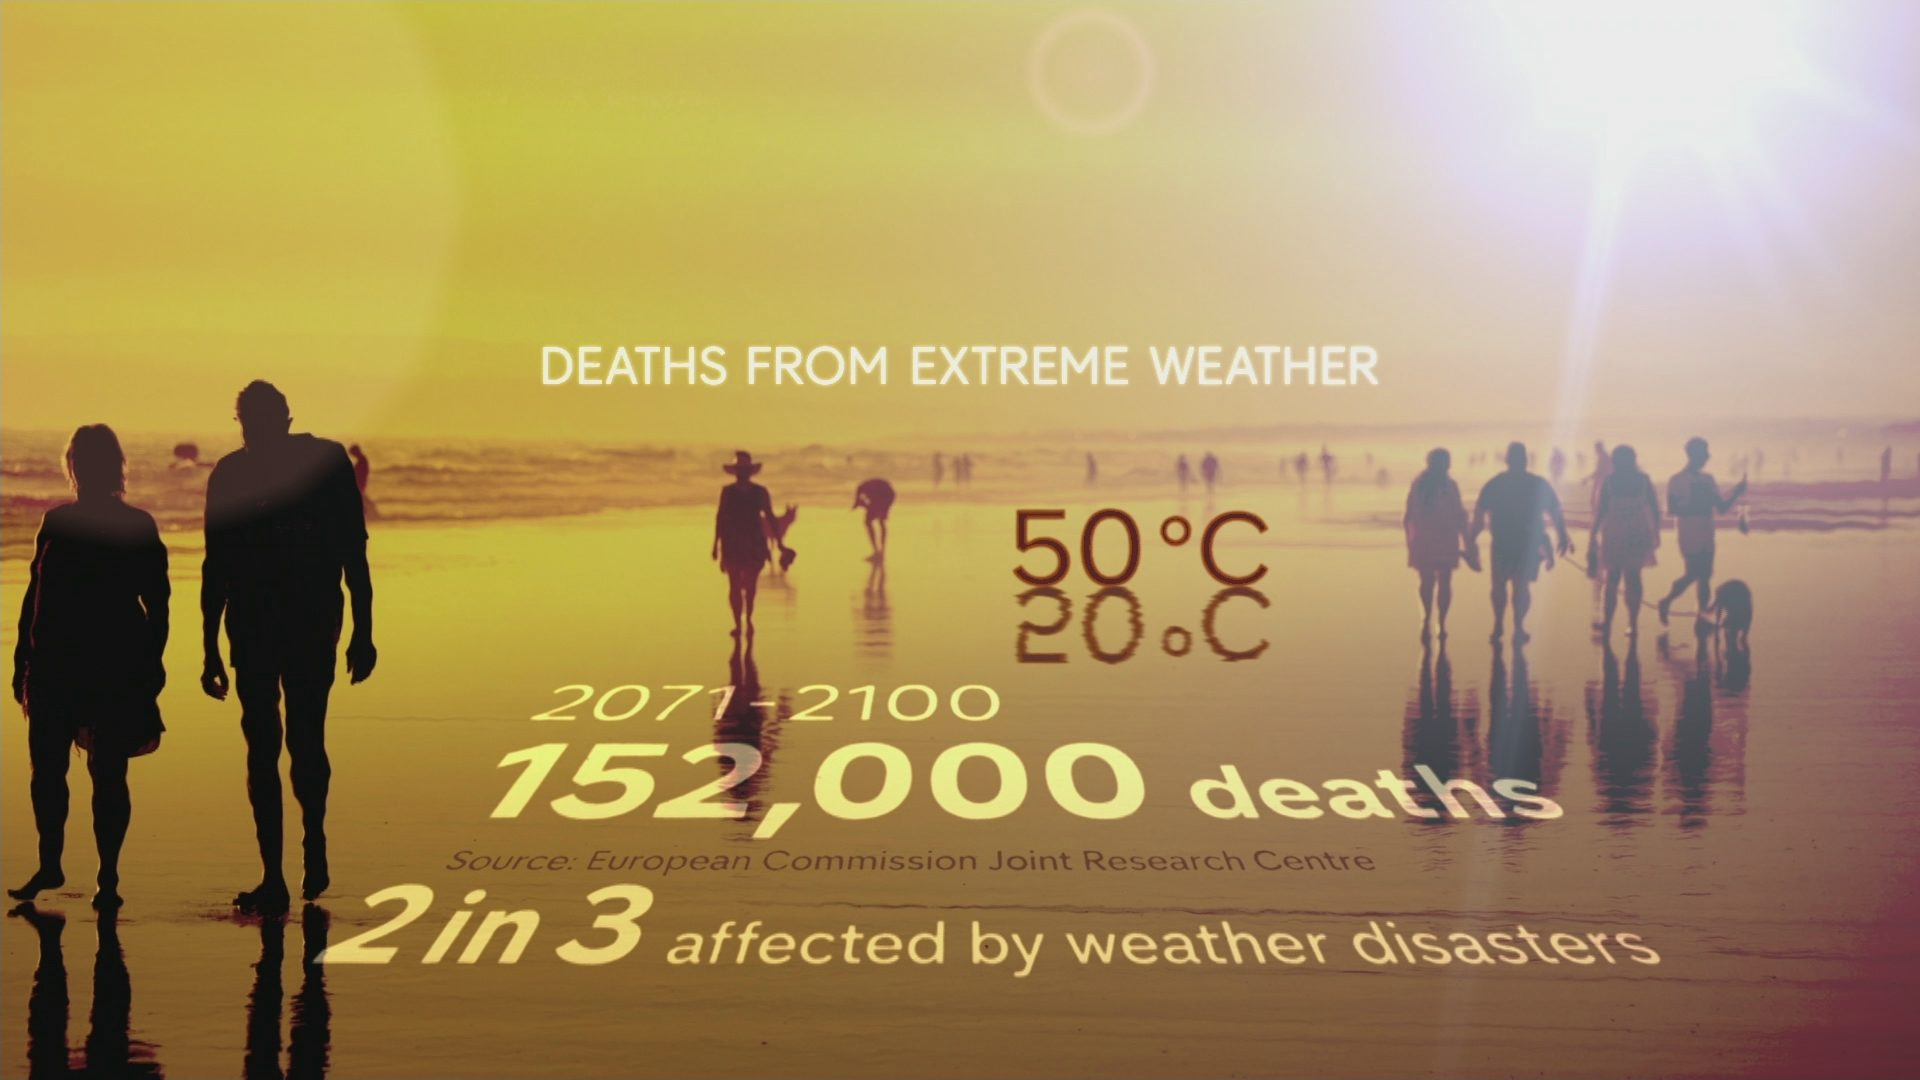 Scientists warn of extreme weather threat to Europe